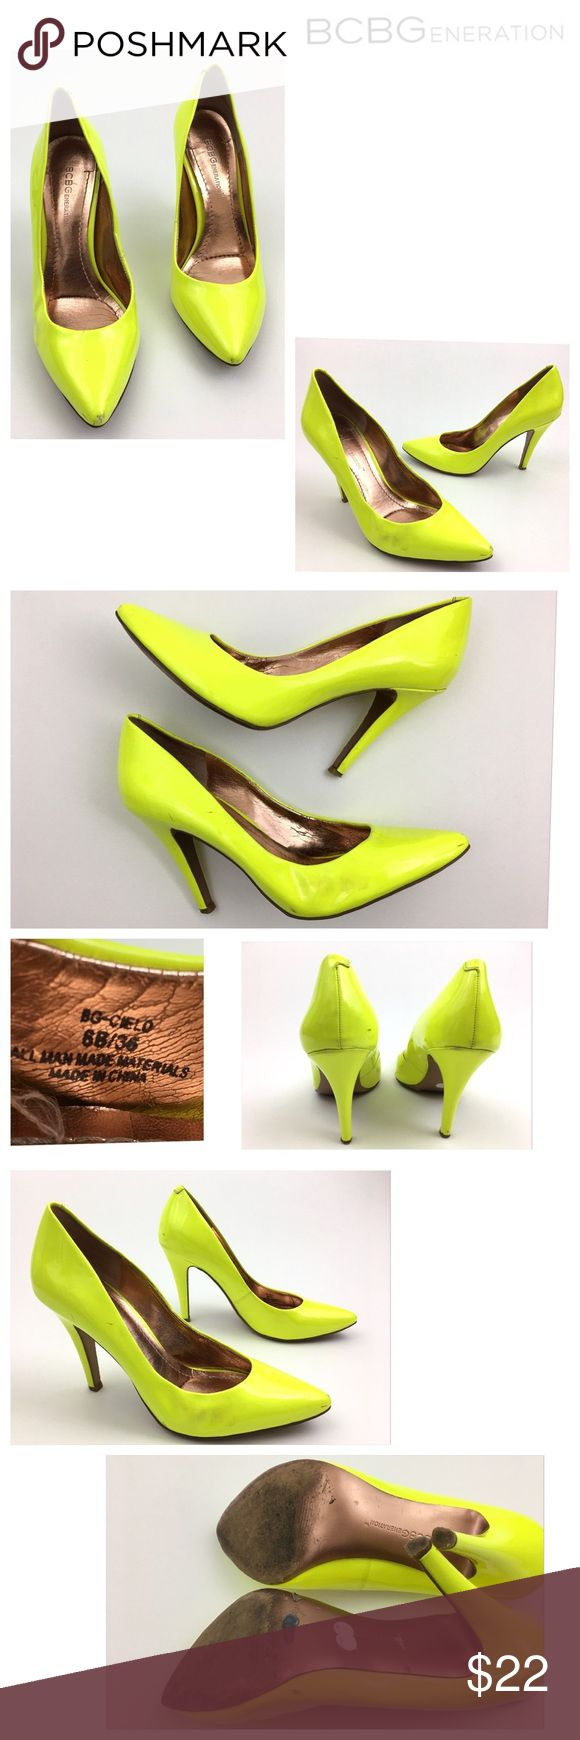 """BCBGeneration Neon Yellow Pointed Toe Pumps BCBGeneration  Style: Cielo  Bright Neon Yellow Pointed Toe High Heel Pumps  Women's Size 6 B Pre Owned Heels, in Good Shape  1/2"""" cut on side of right heel-Shown in Photo Has Some Scuffing- All Shown in Photos   Heel Height: 4"""" Original Box is Not Included       Item comes from a pet free/smoke free clean environment please contact me for any additional questions BCBGeneration Shoes Heels"""